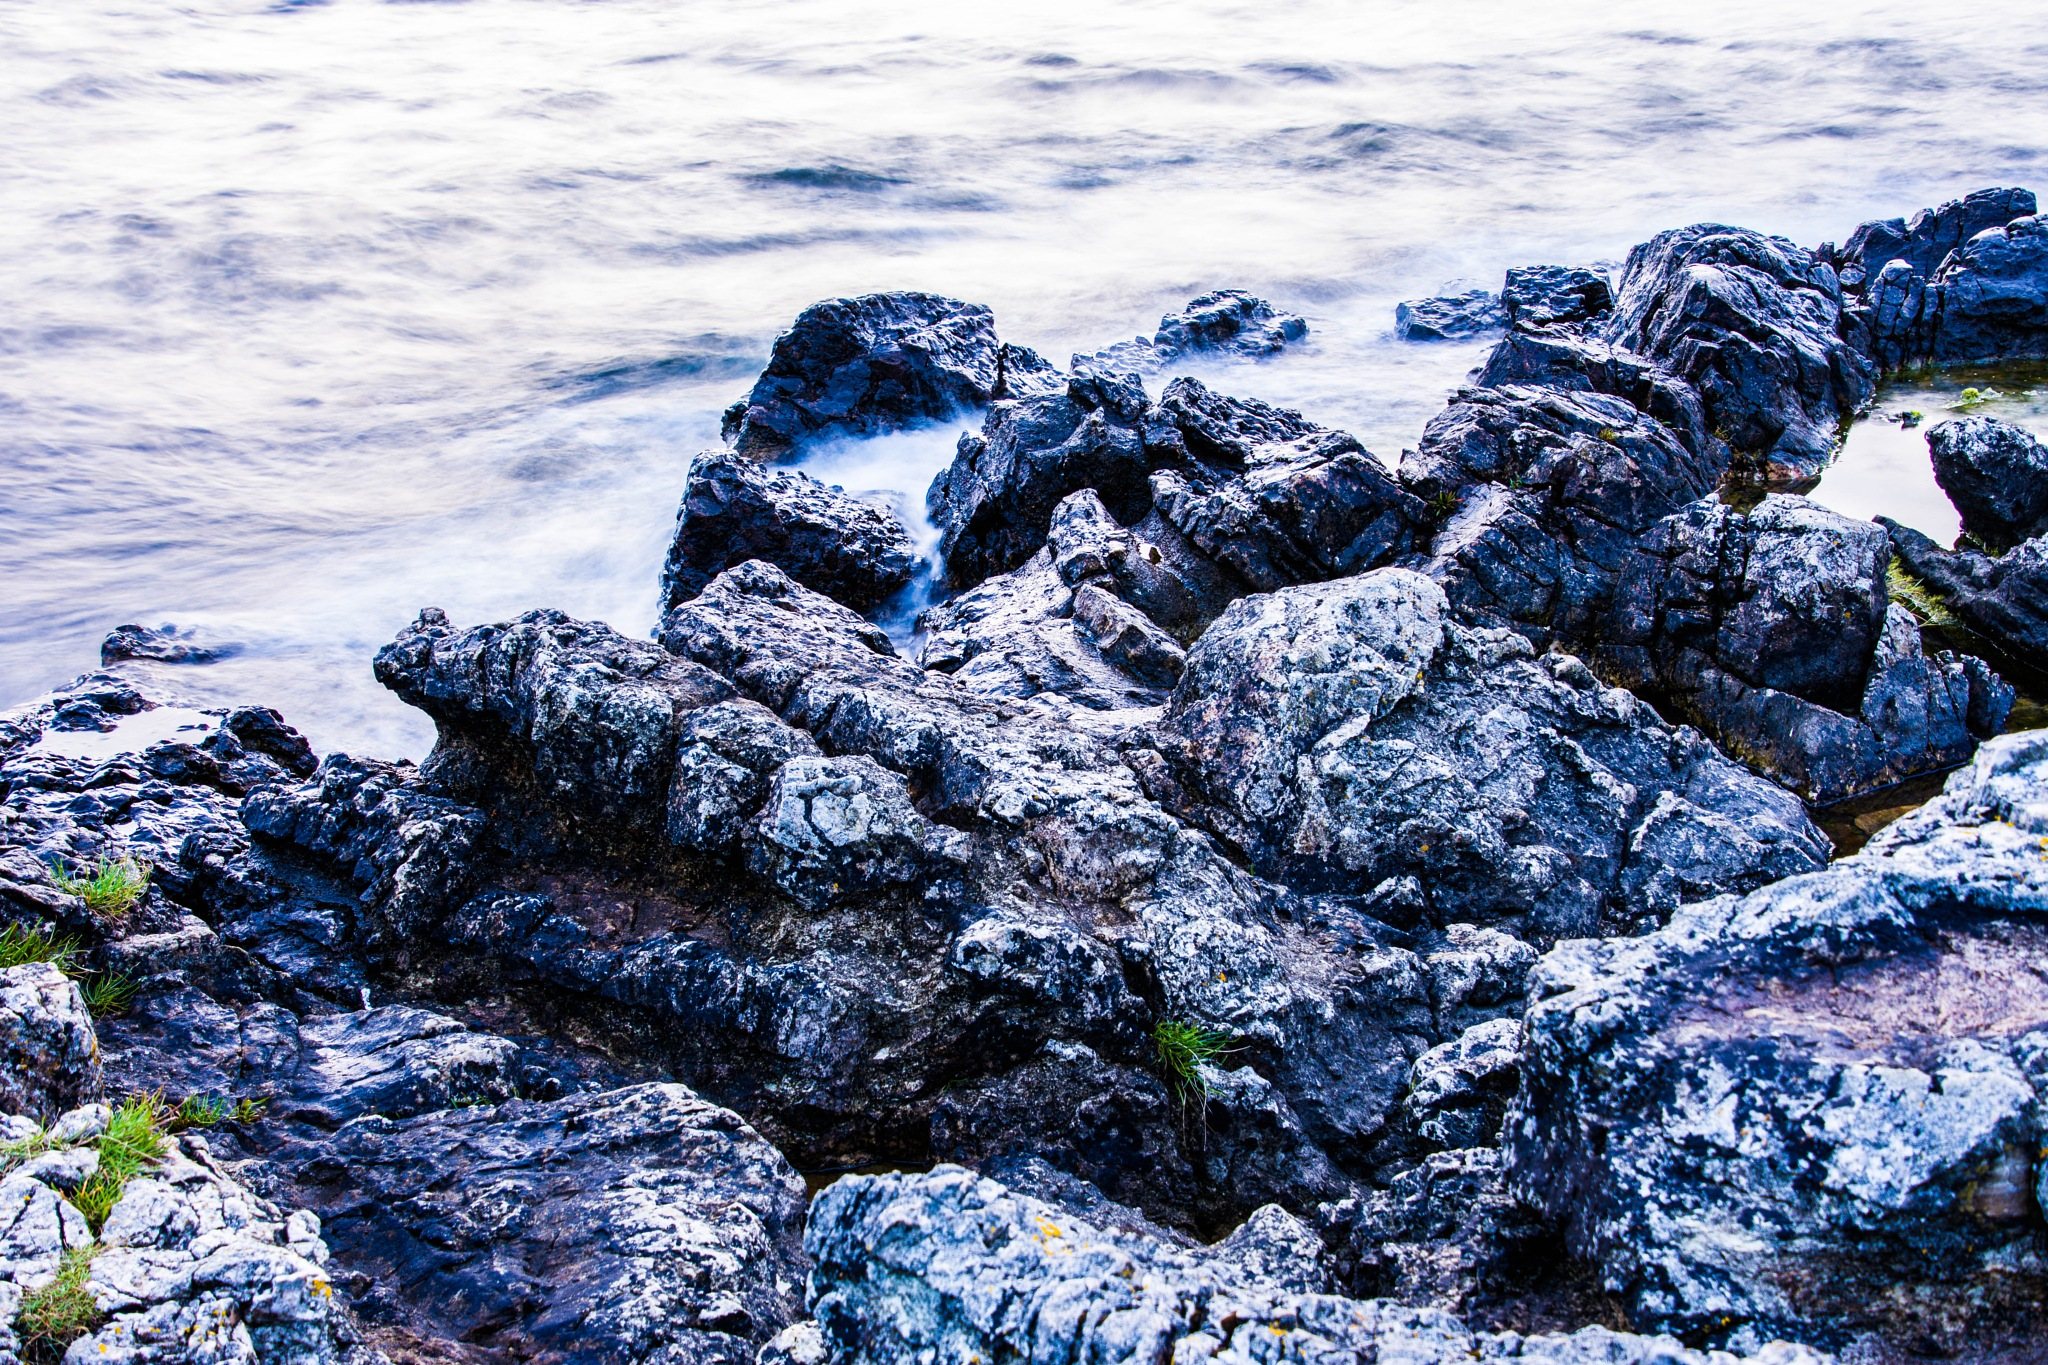 Rocks and water by Johnny Lythell